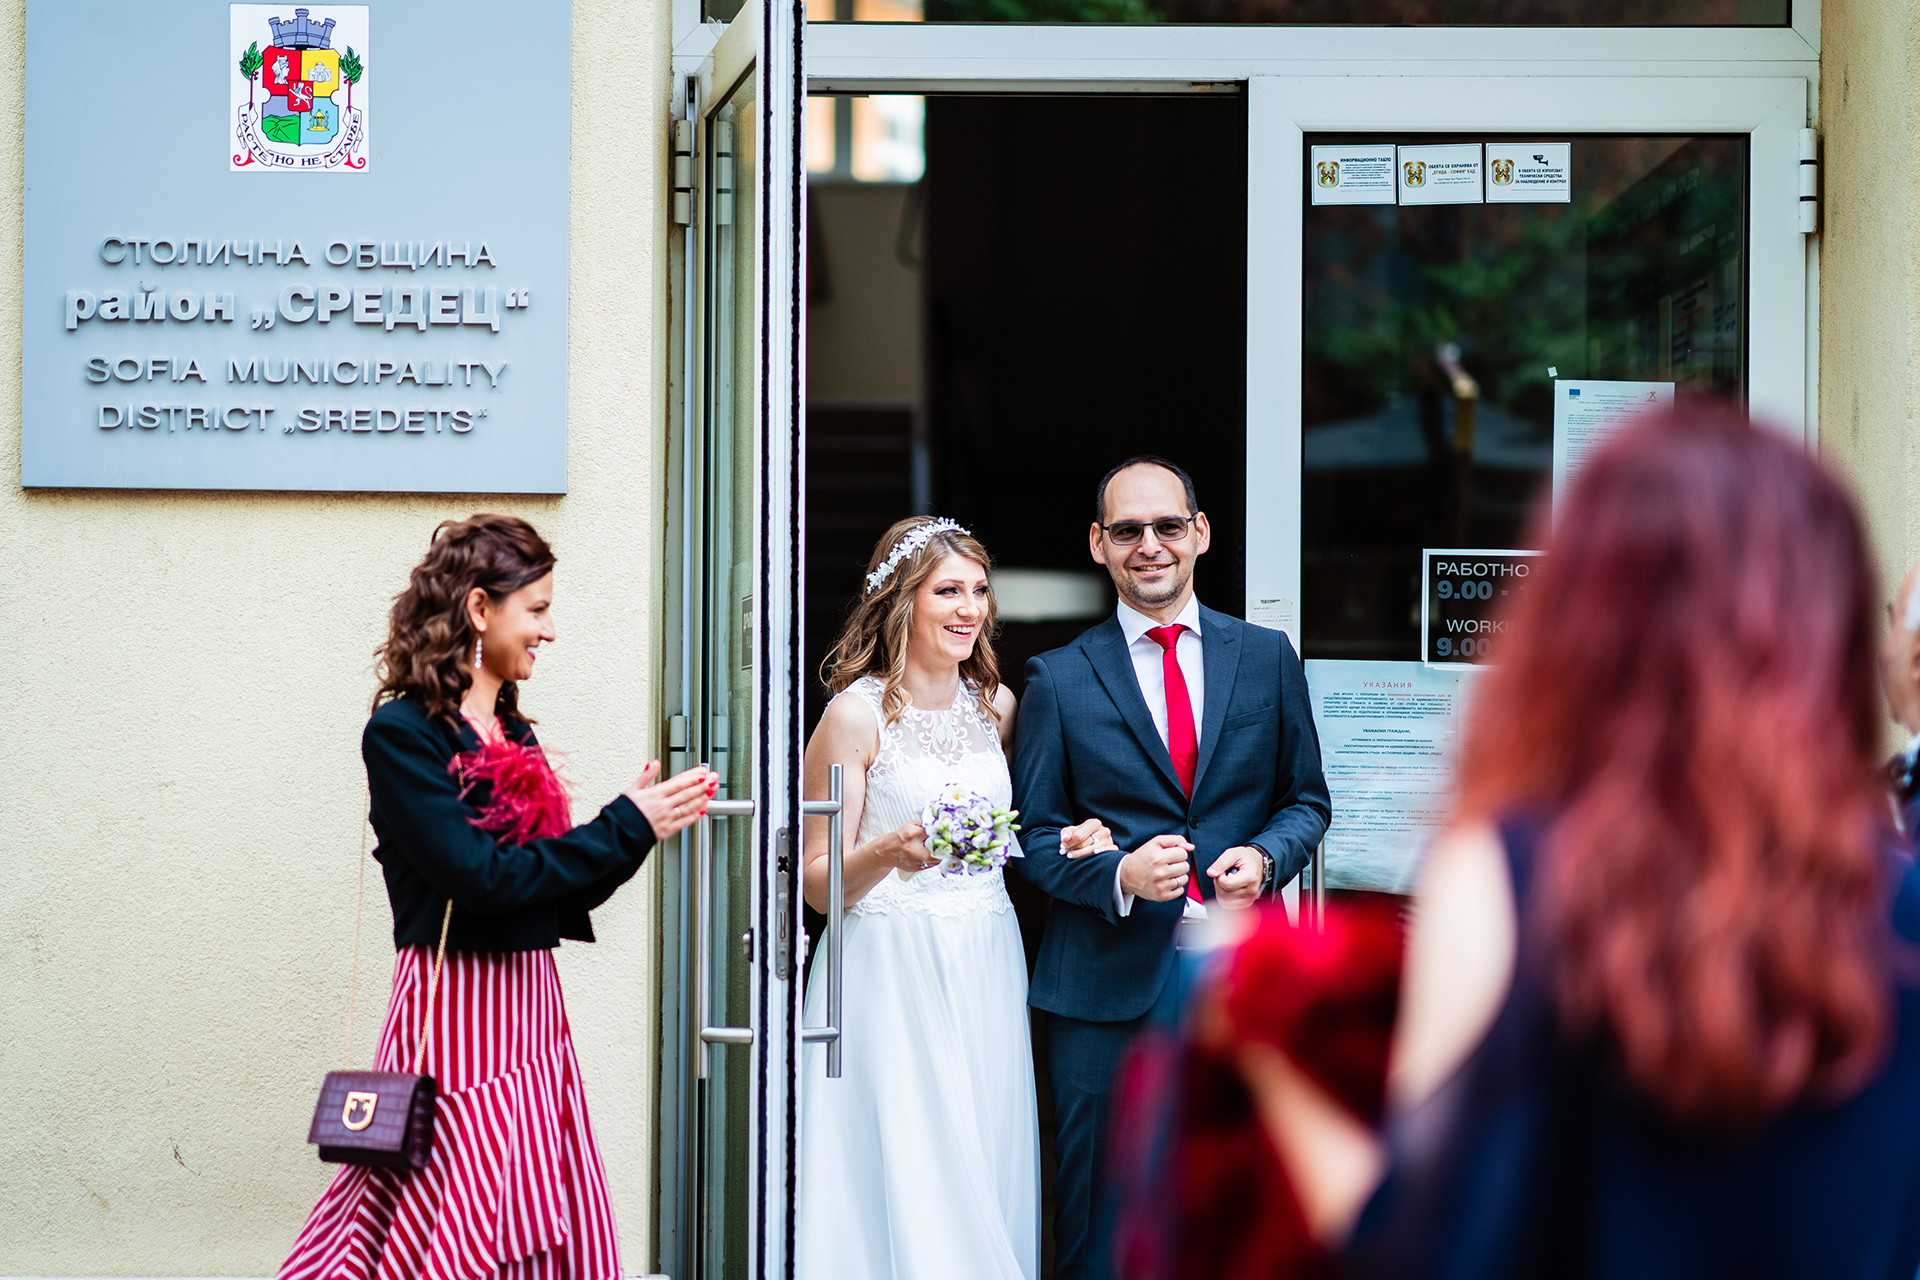 Sofia, Bulgaria Elopement Ceremony Image | on their way to celebrate their marriage